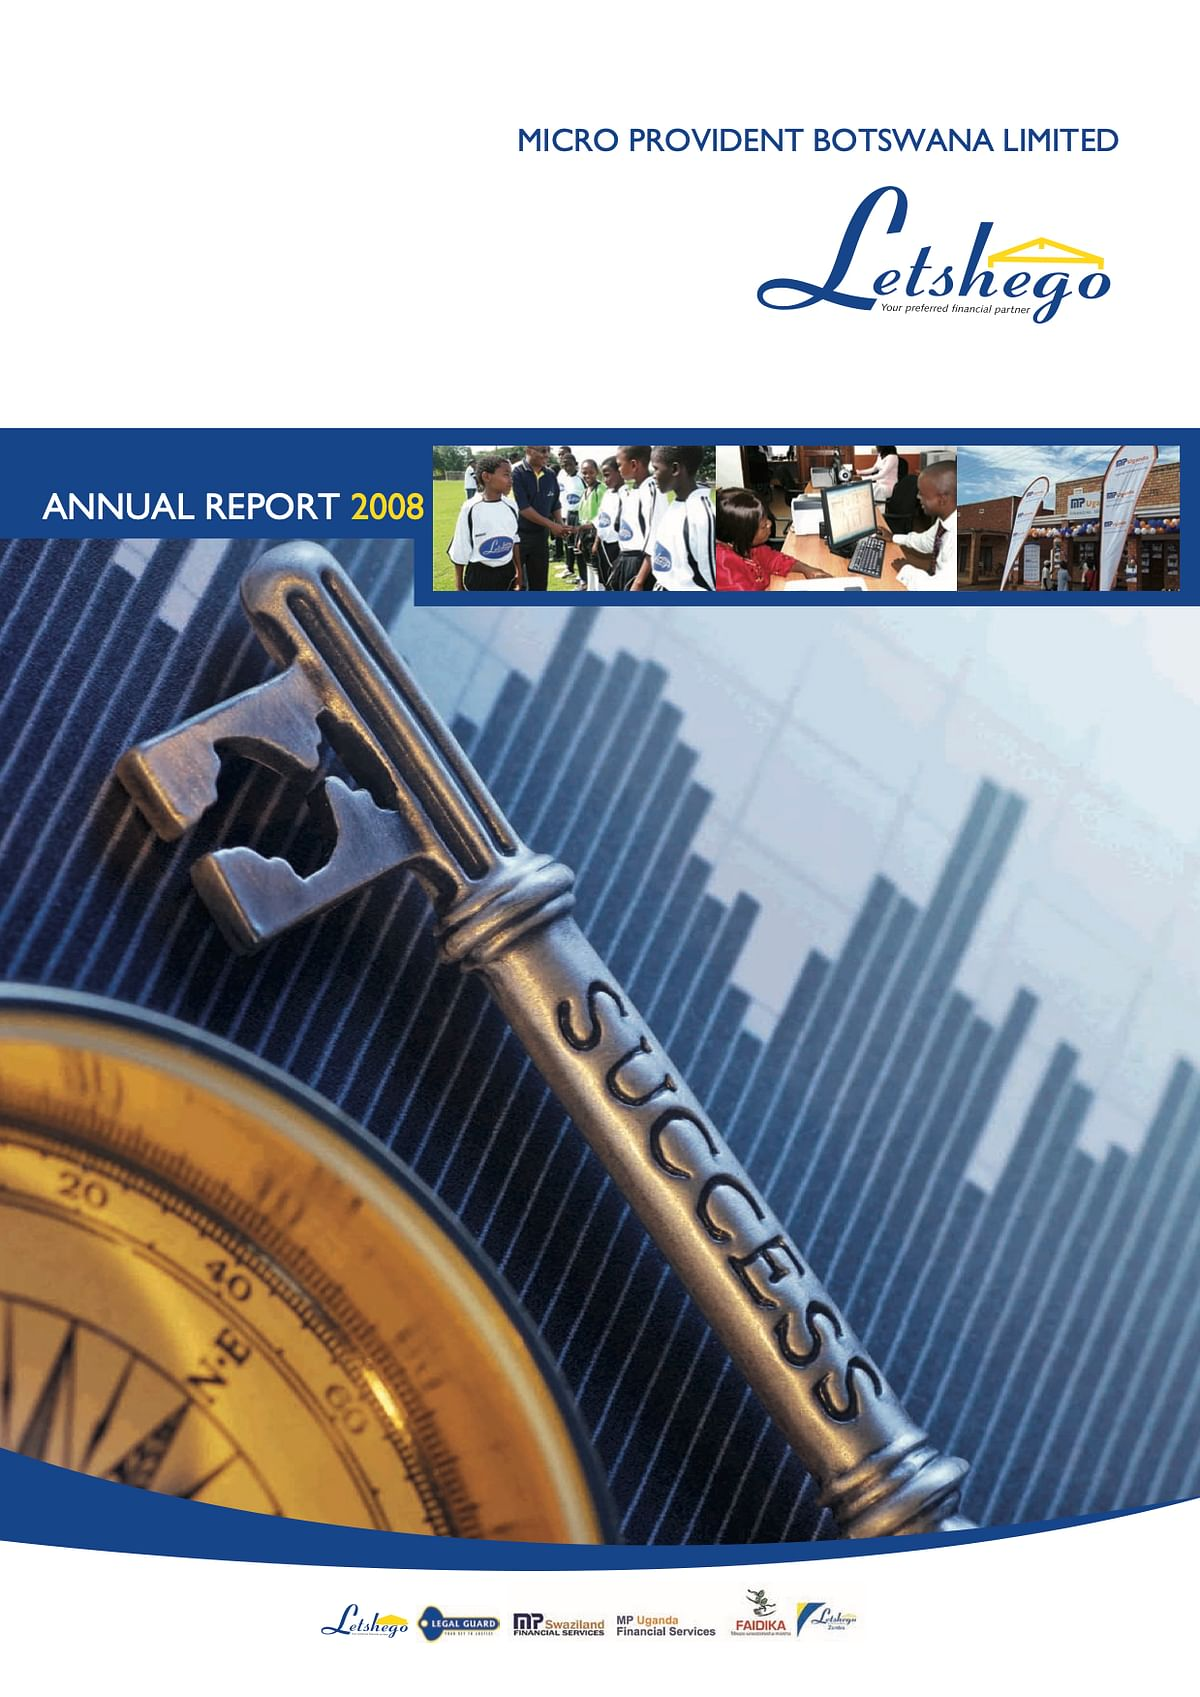 Letshego Group Annual Report 2008